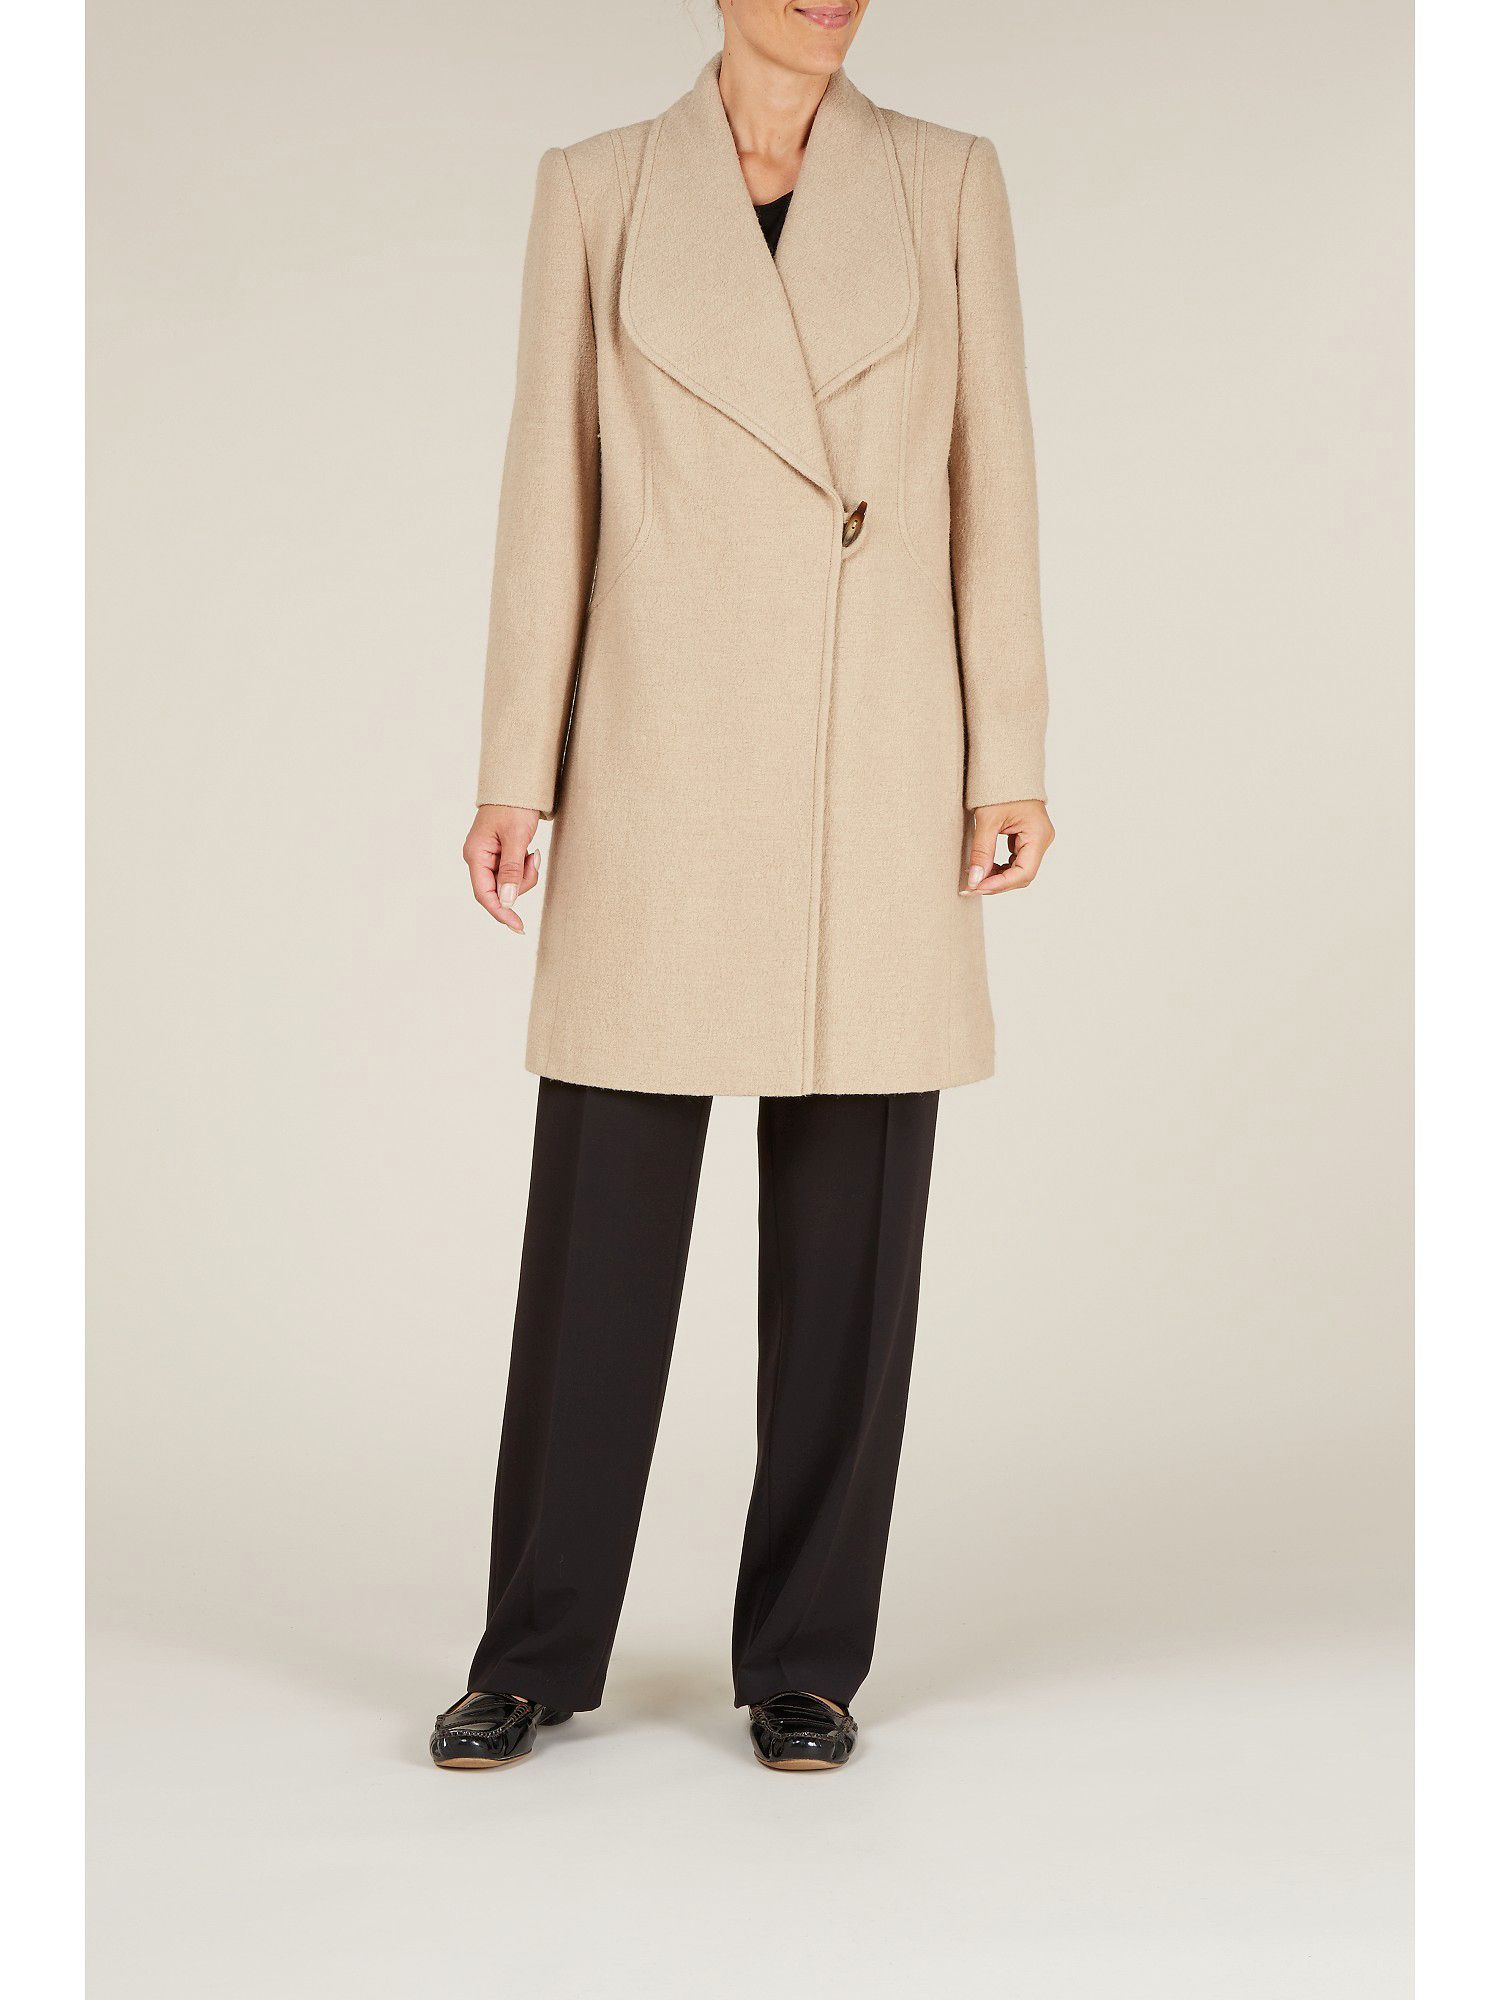 Mid-length camel wool coat